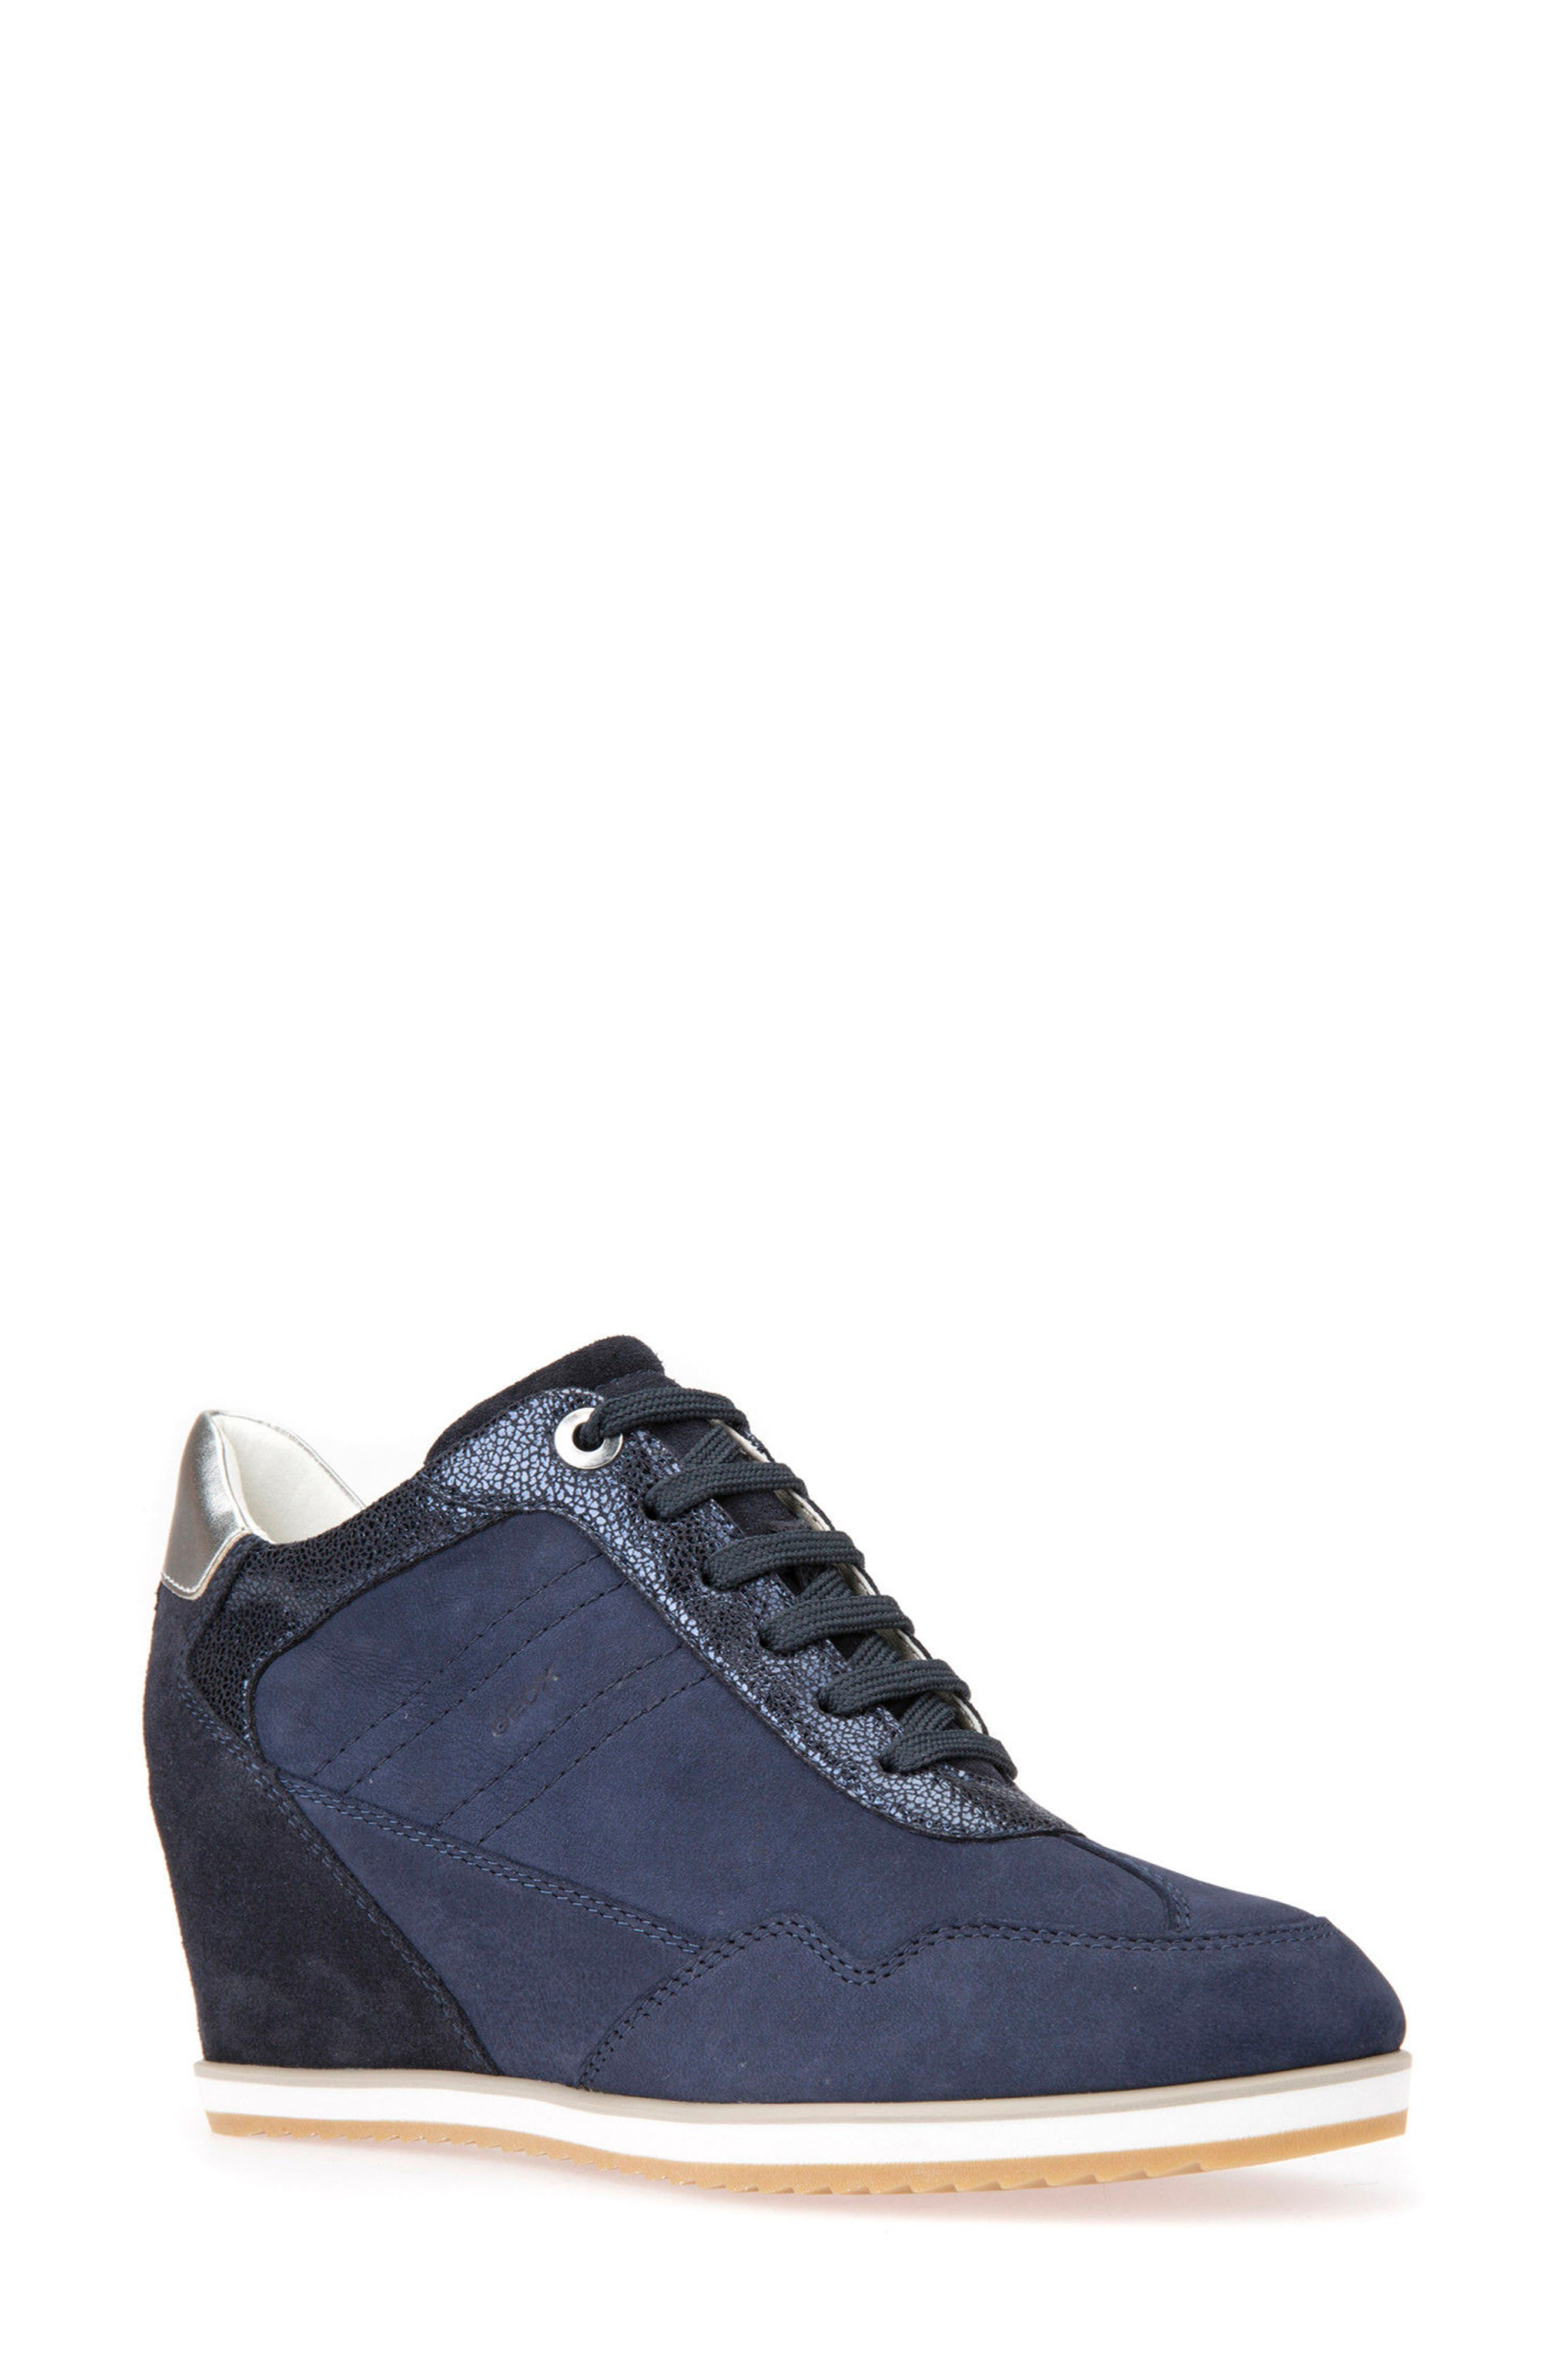 ILLUSION 34 WEDGE SNEAKER